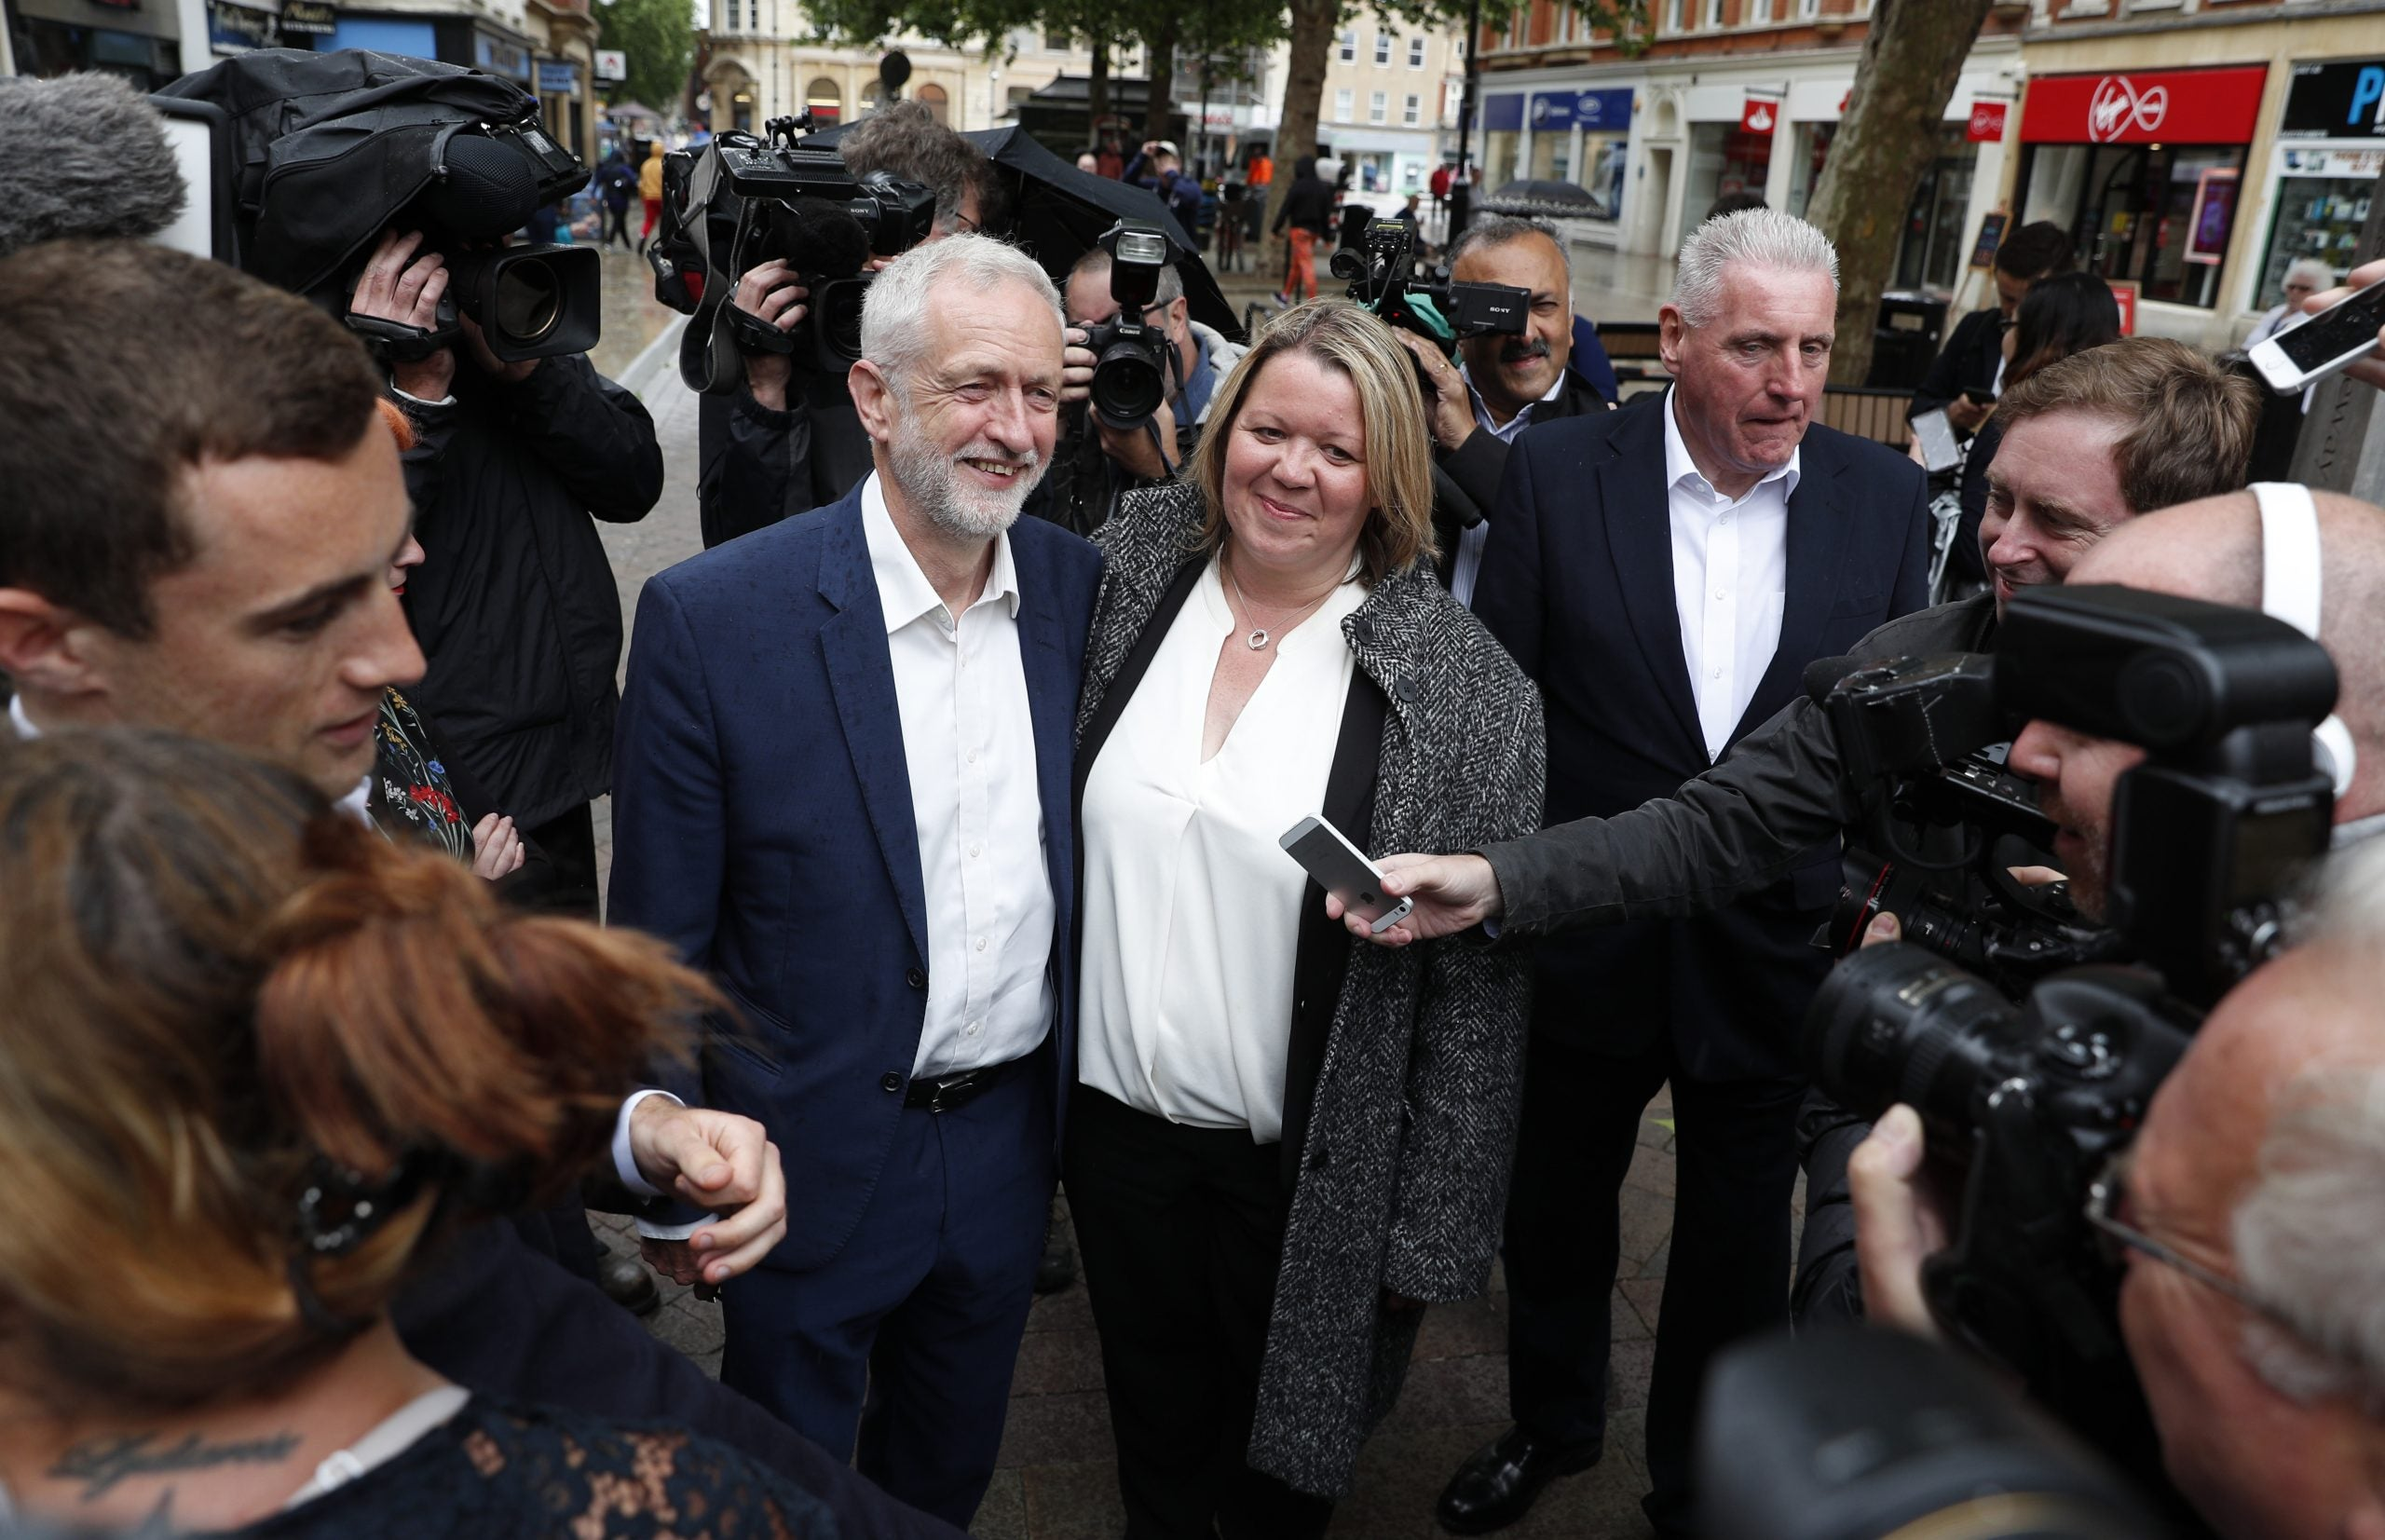 Labour would have lost Peterborough by promising a new Brexit referendum